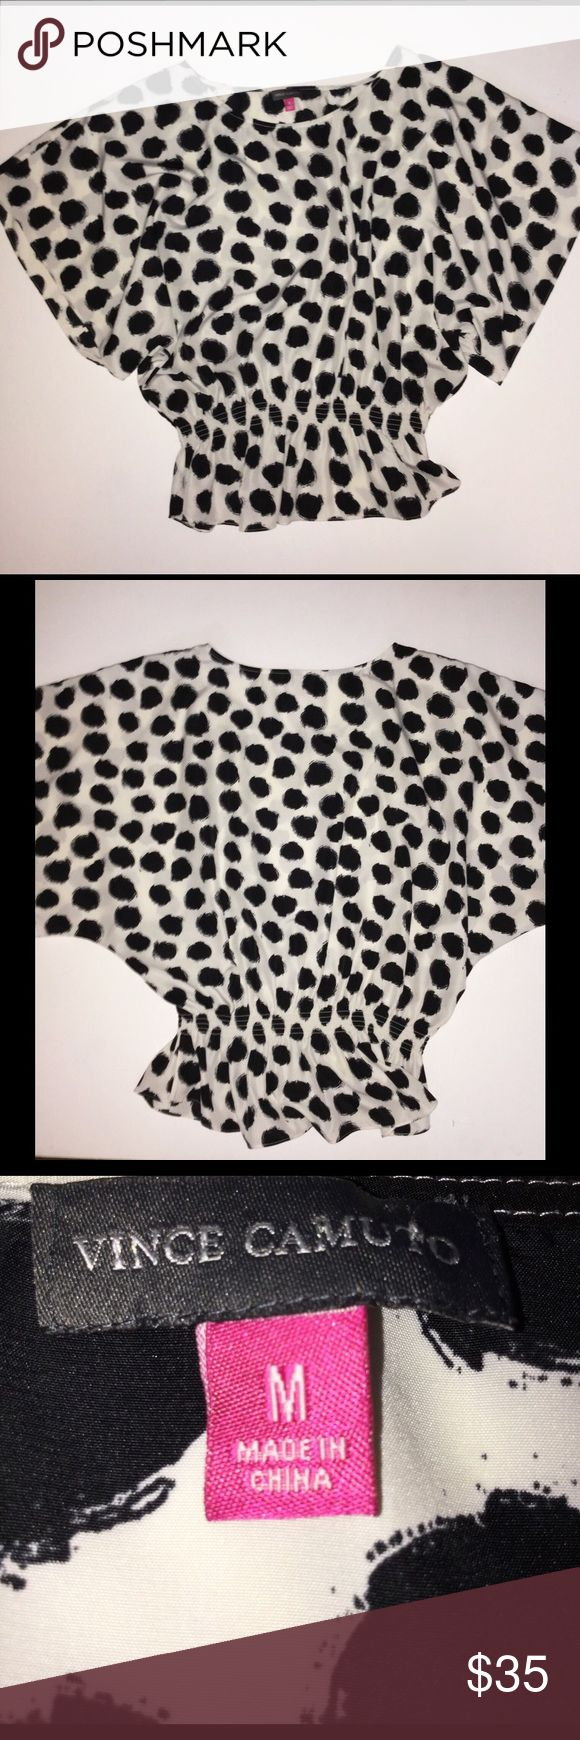 Vince Camuto Medium White and Black Batwing Top This is a white Vince Camuto Top with Black Spots. It is a size Medium. Excellent Condition. It has a rounded neck, batwing sleeves, and a tapered Peplum style waist. This would be a fantastic casual or dressy top for fall. Keywords: designer, batwing, short sleeve, draped, Peplum, Polka Dot, polkadot, polka-dot, 3/4 sleeve, work, career, job interview, Blouse, shirt Vince Camuto Tops Blouses